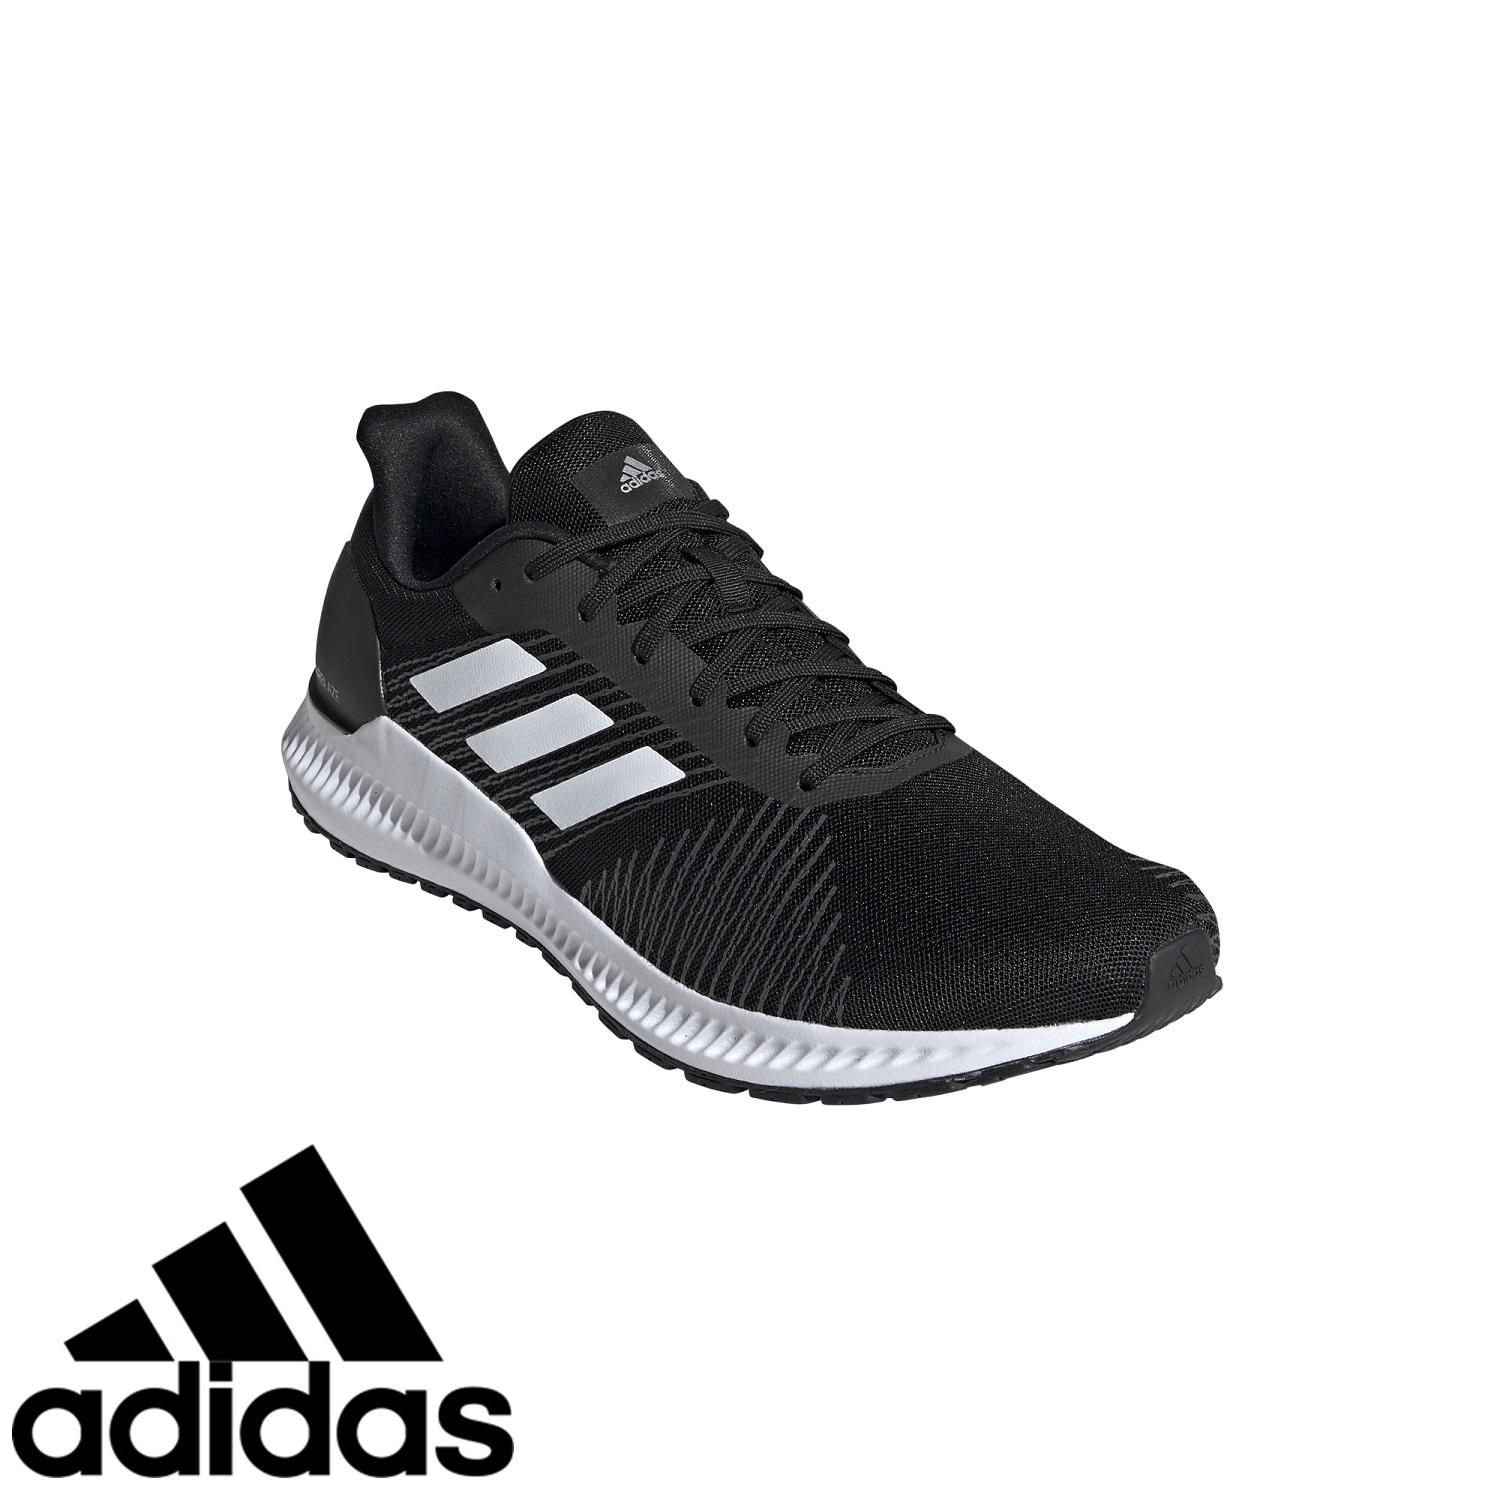 17e24dc17a8 Running Shoes for Men for sale - Mens Running Shoes online brands ...